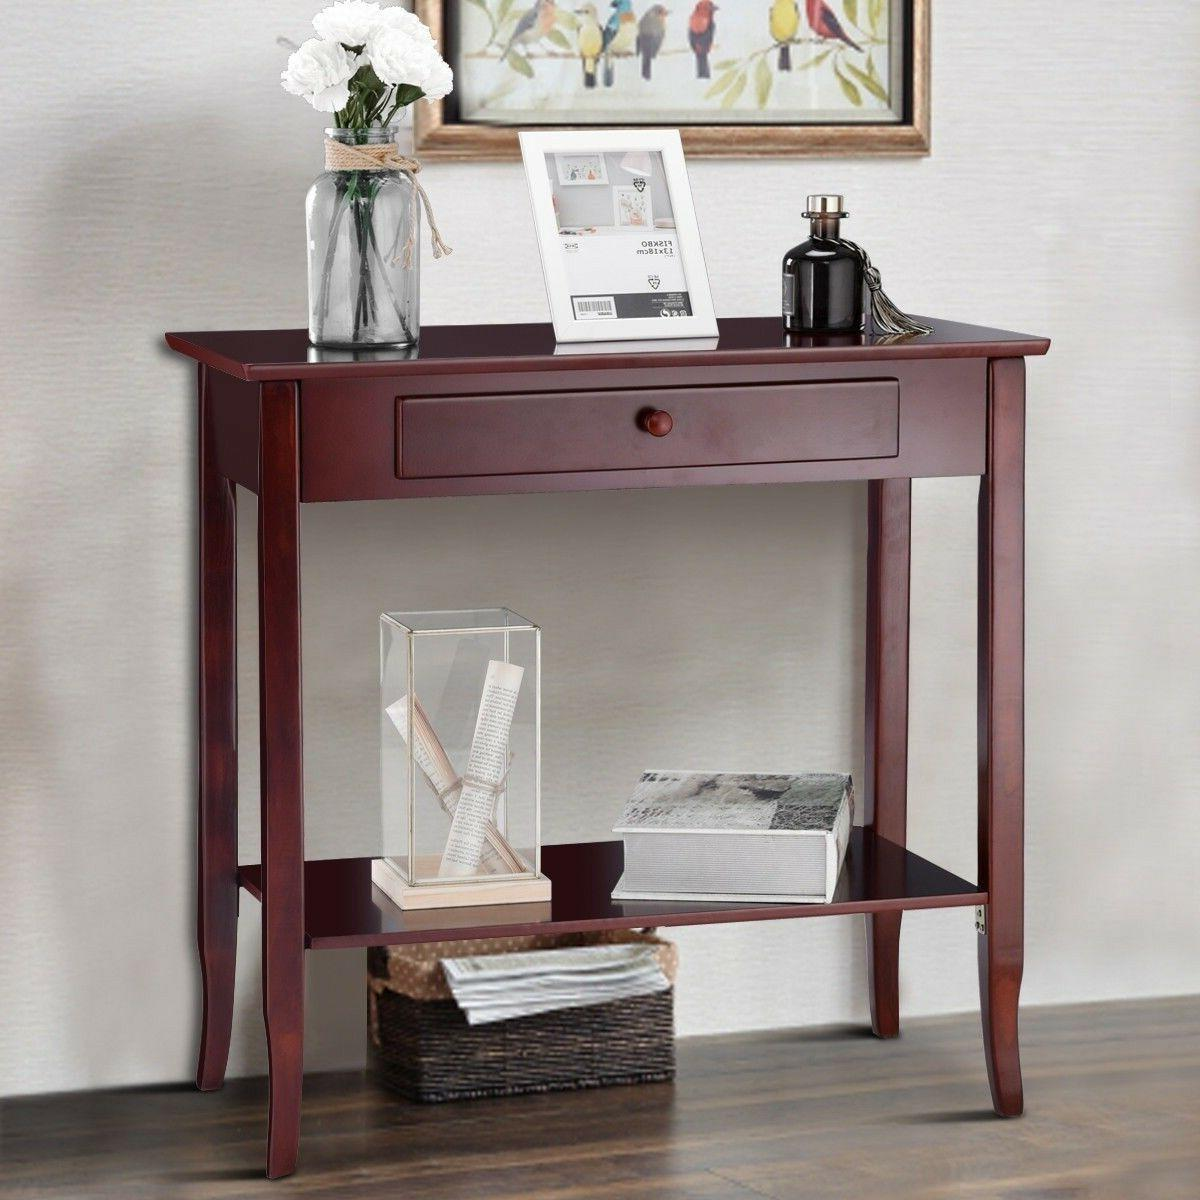 Entryway Console Table Hallway Living Room ClassIc Style Fur